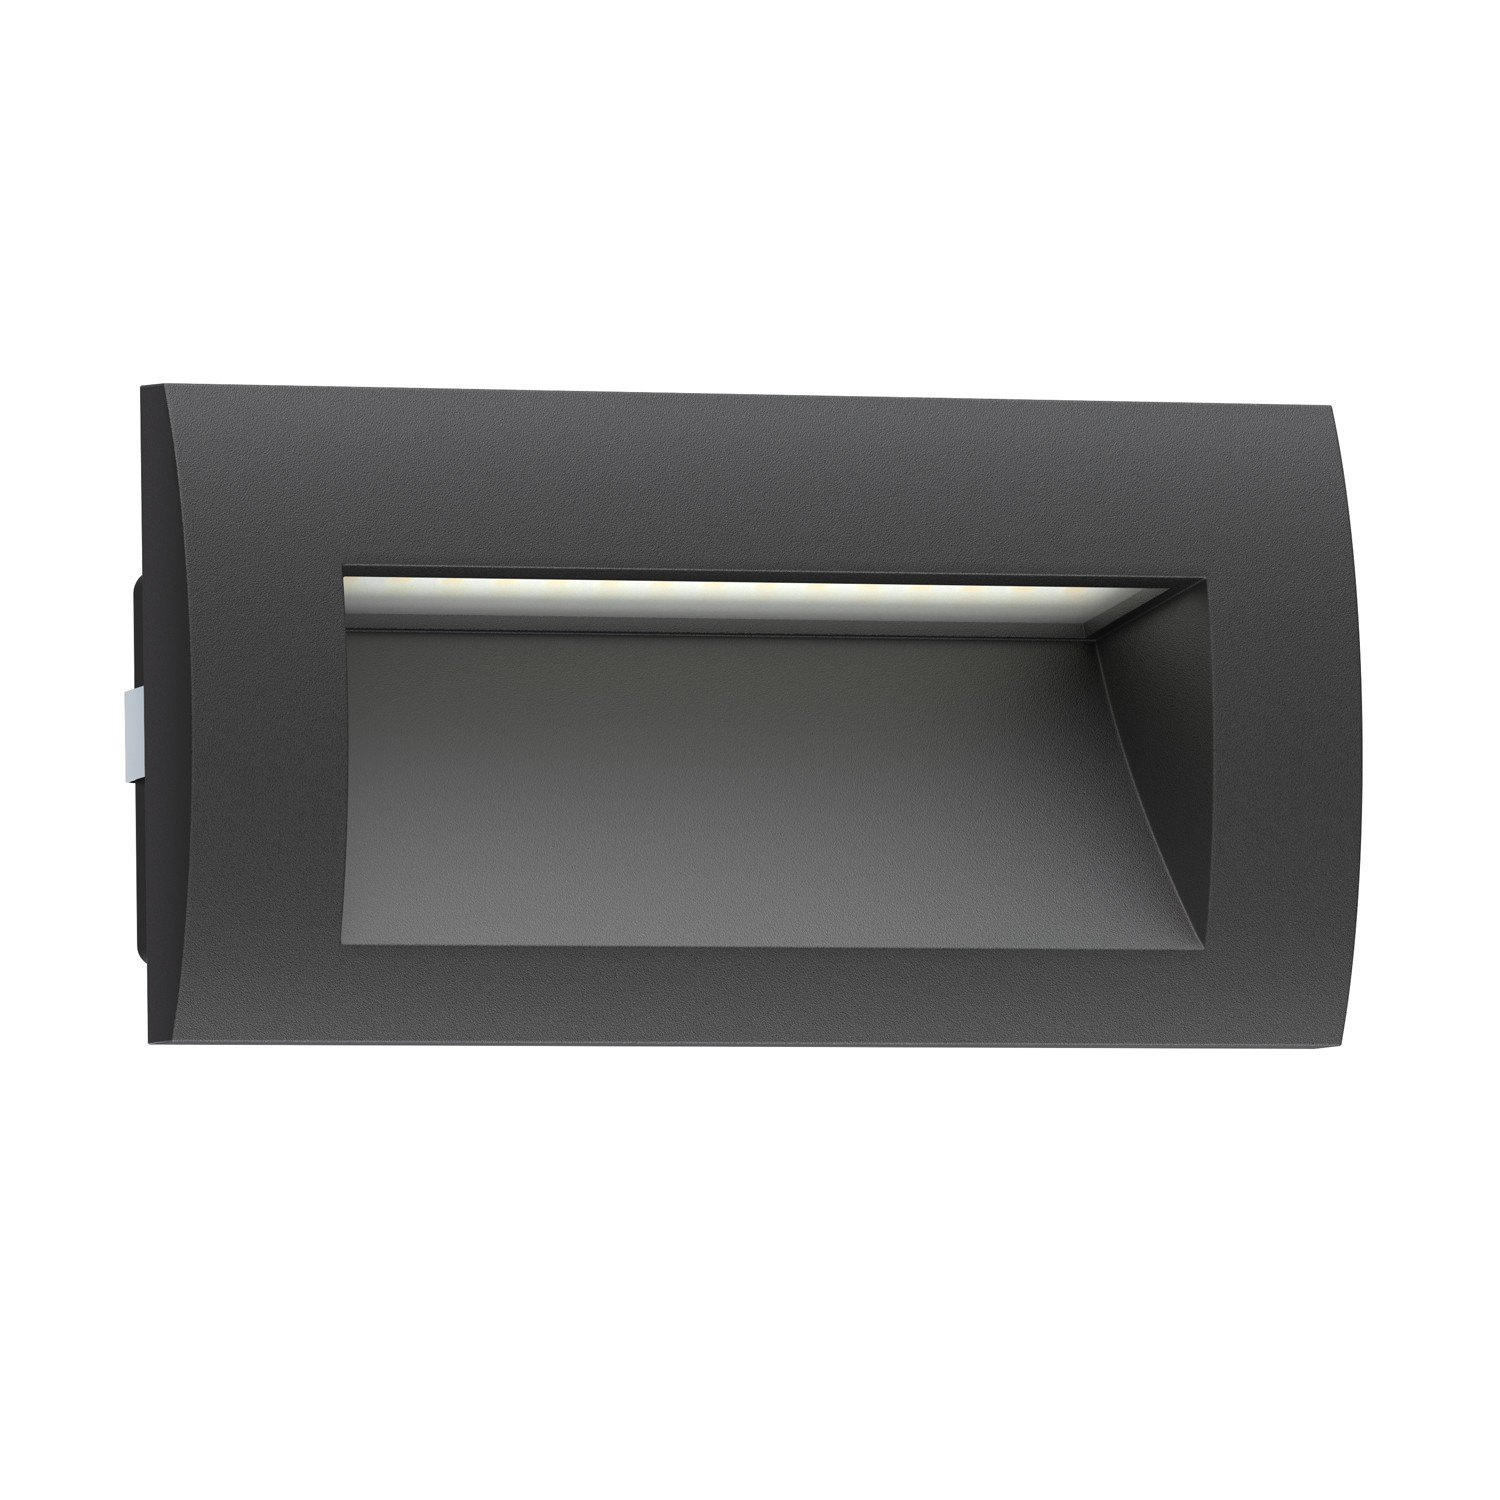 led wand einbauleuchte zibal f r au en schwarz warm wei 140x70mm von. Black Bedroom Furniture Sets. Home Design Ideas